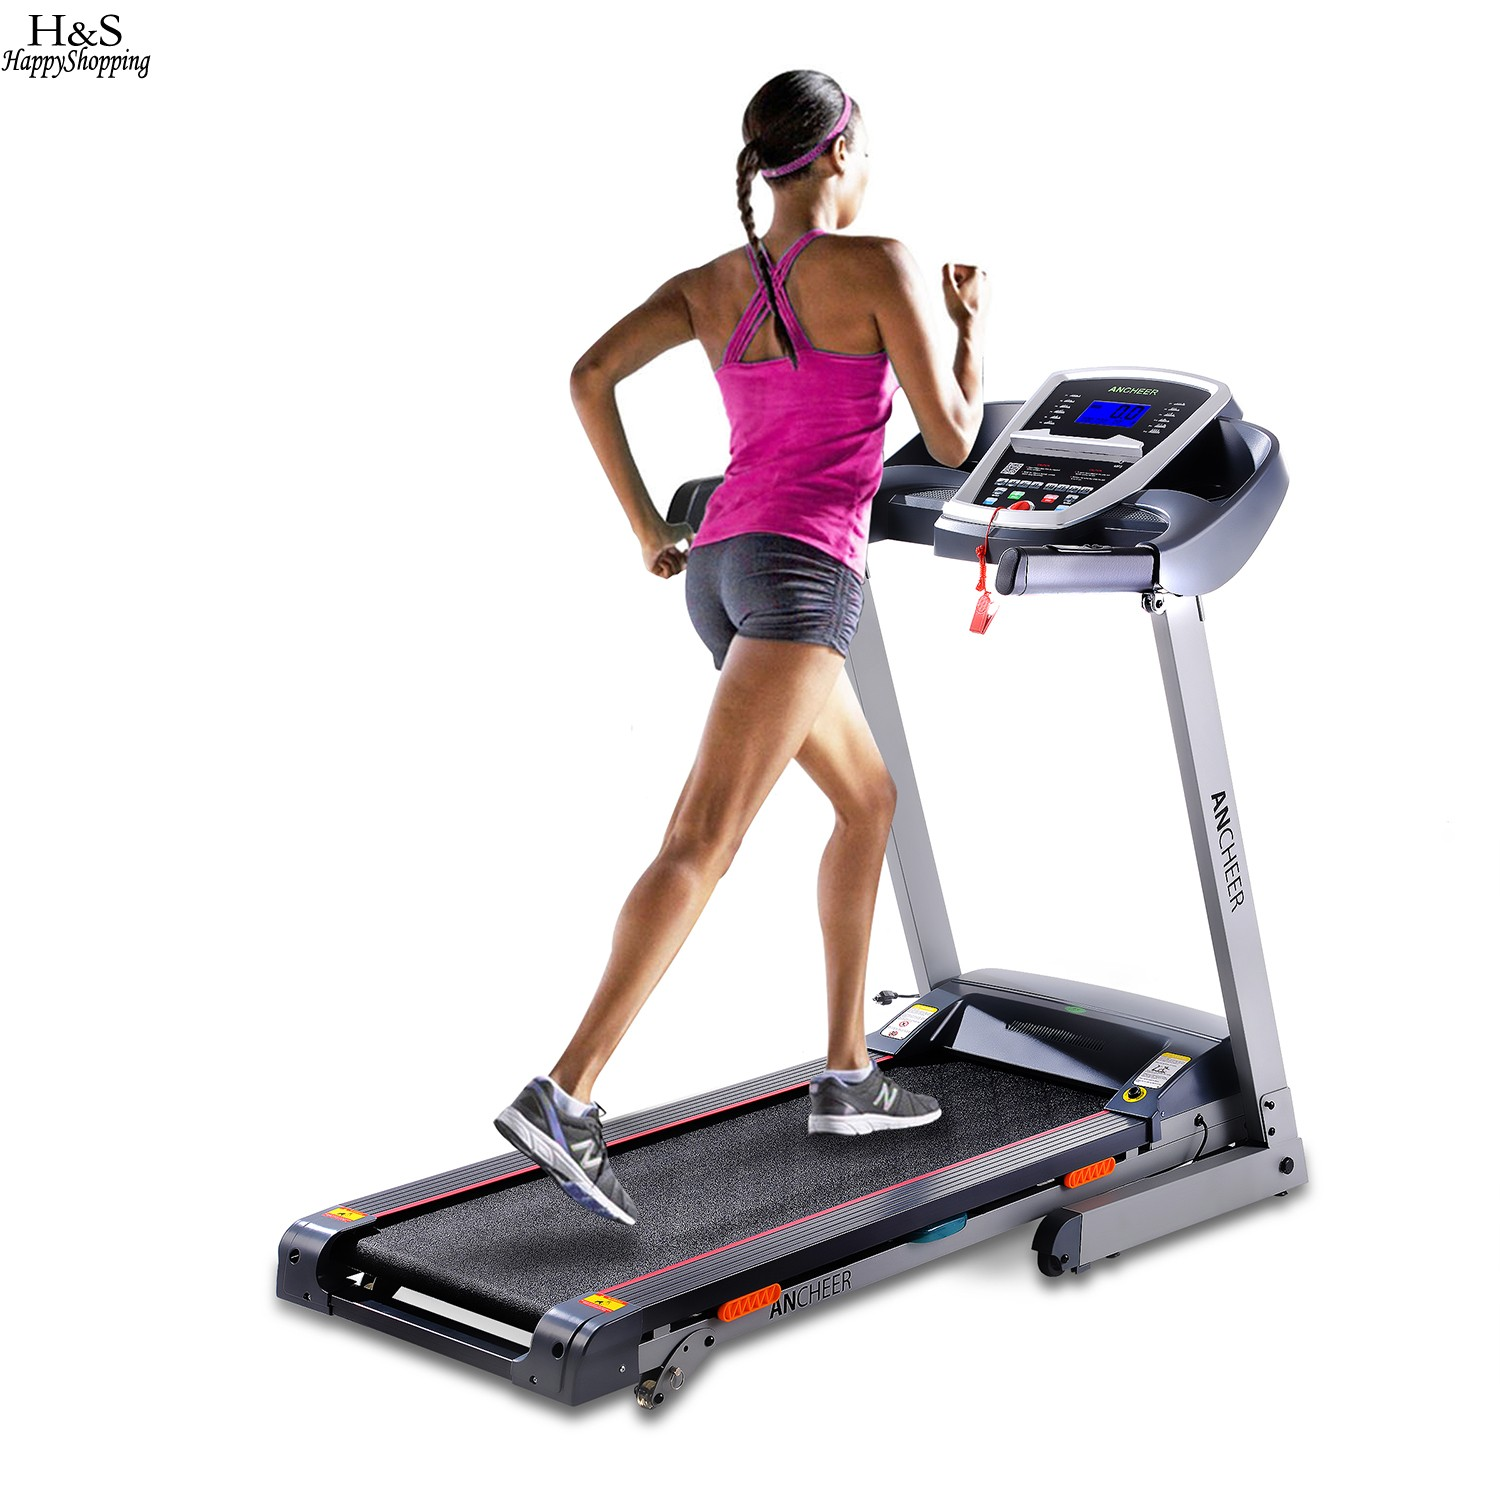 2017 New 3.0HP DC1.0-14 km/h Foldable Electric Treadmill Exercise Equipment Machine Home Gym Hot sale ancheer fitness folding electric treadmill exercise equipment motorized treadmill gym home walking jogging running machine